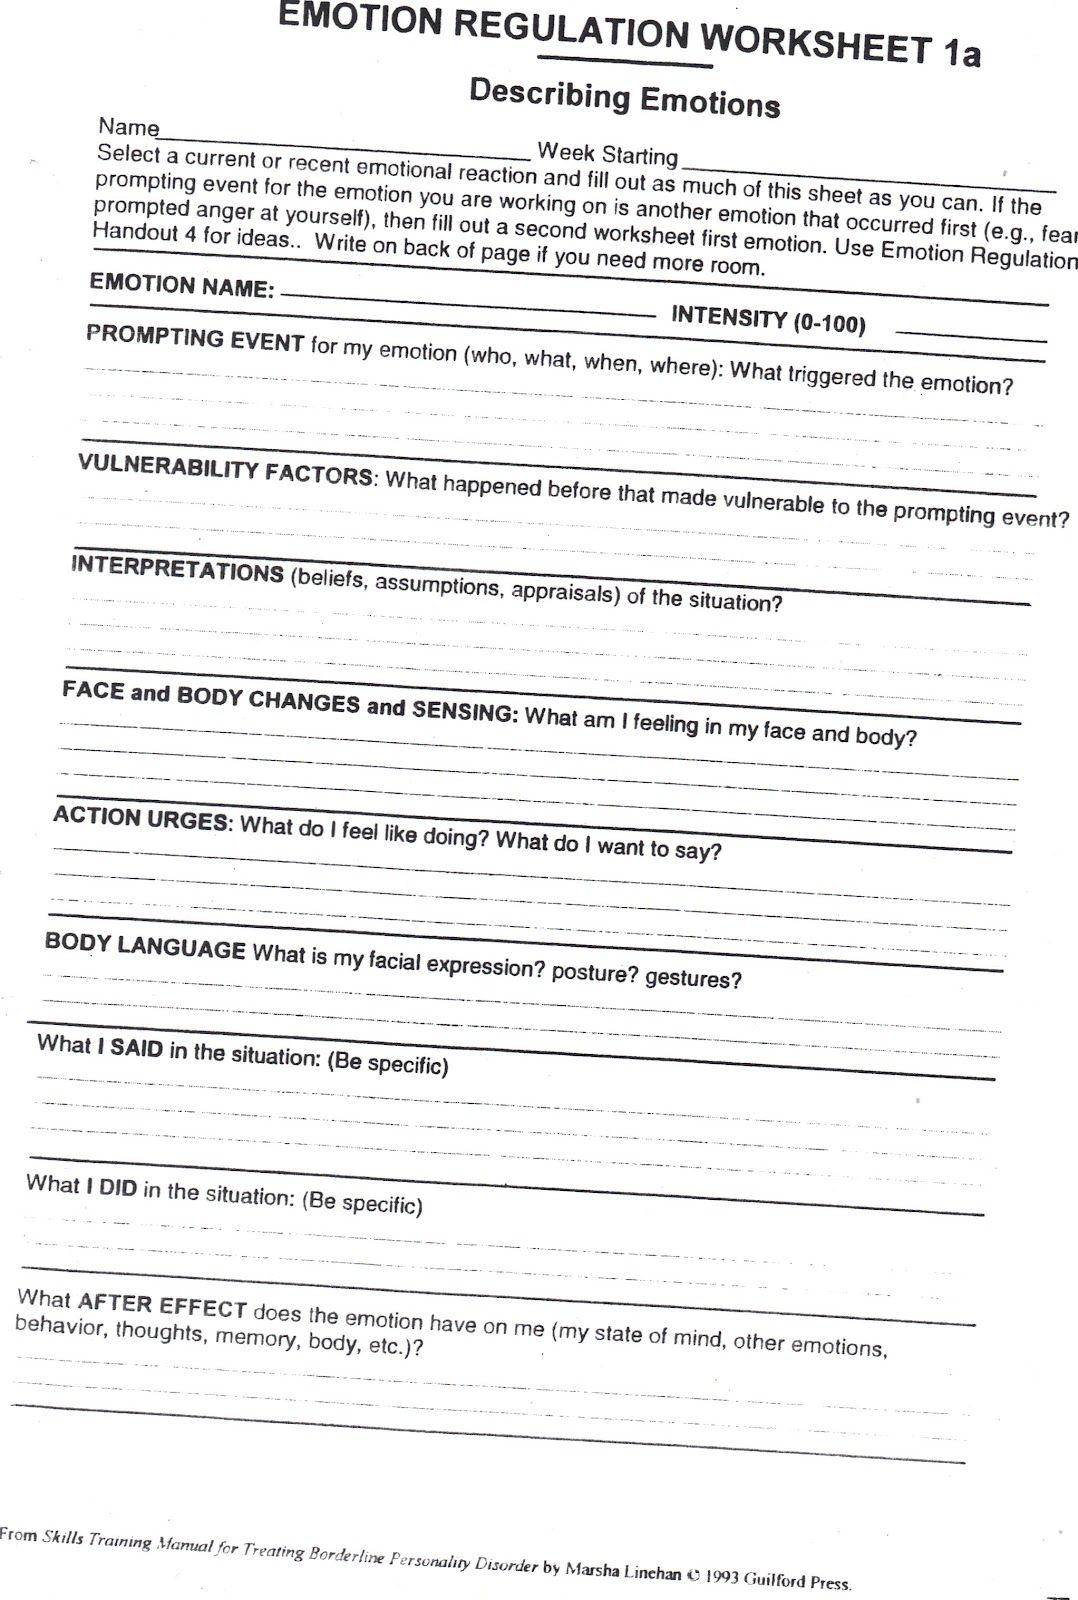 Emotion Regulation Worksheet 1a Dbt 1 078 1 600 Pixels